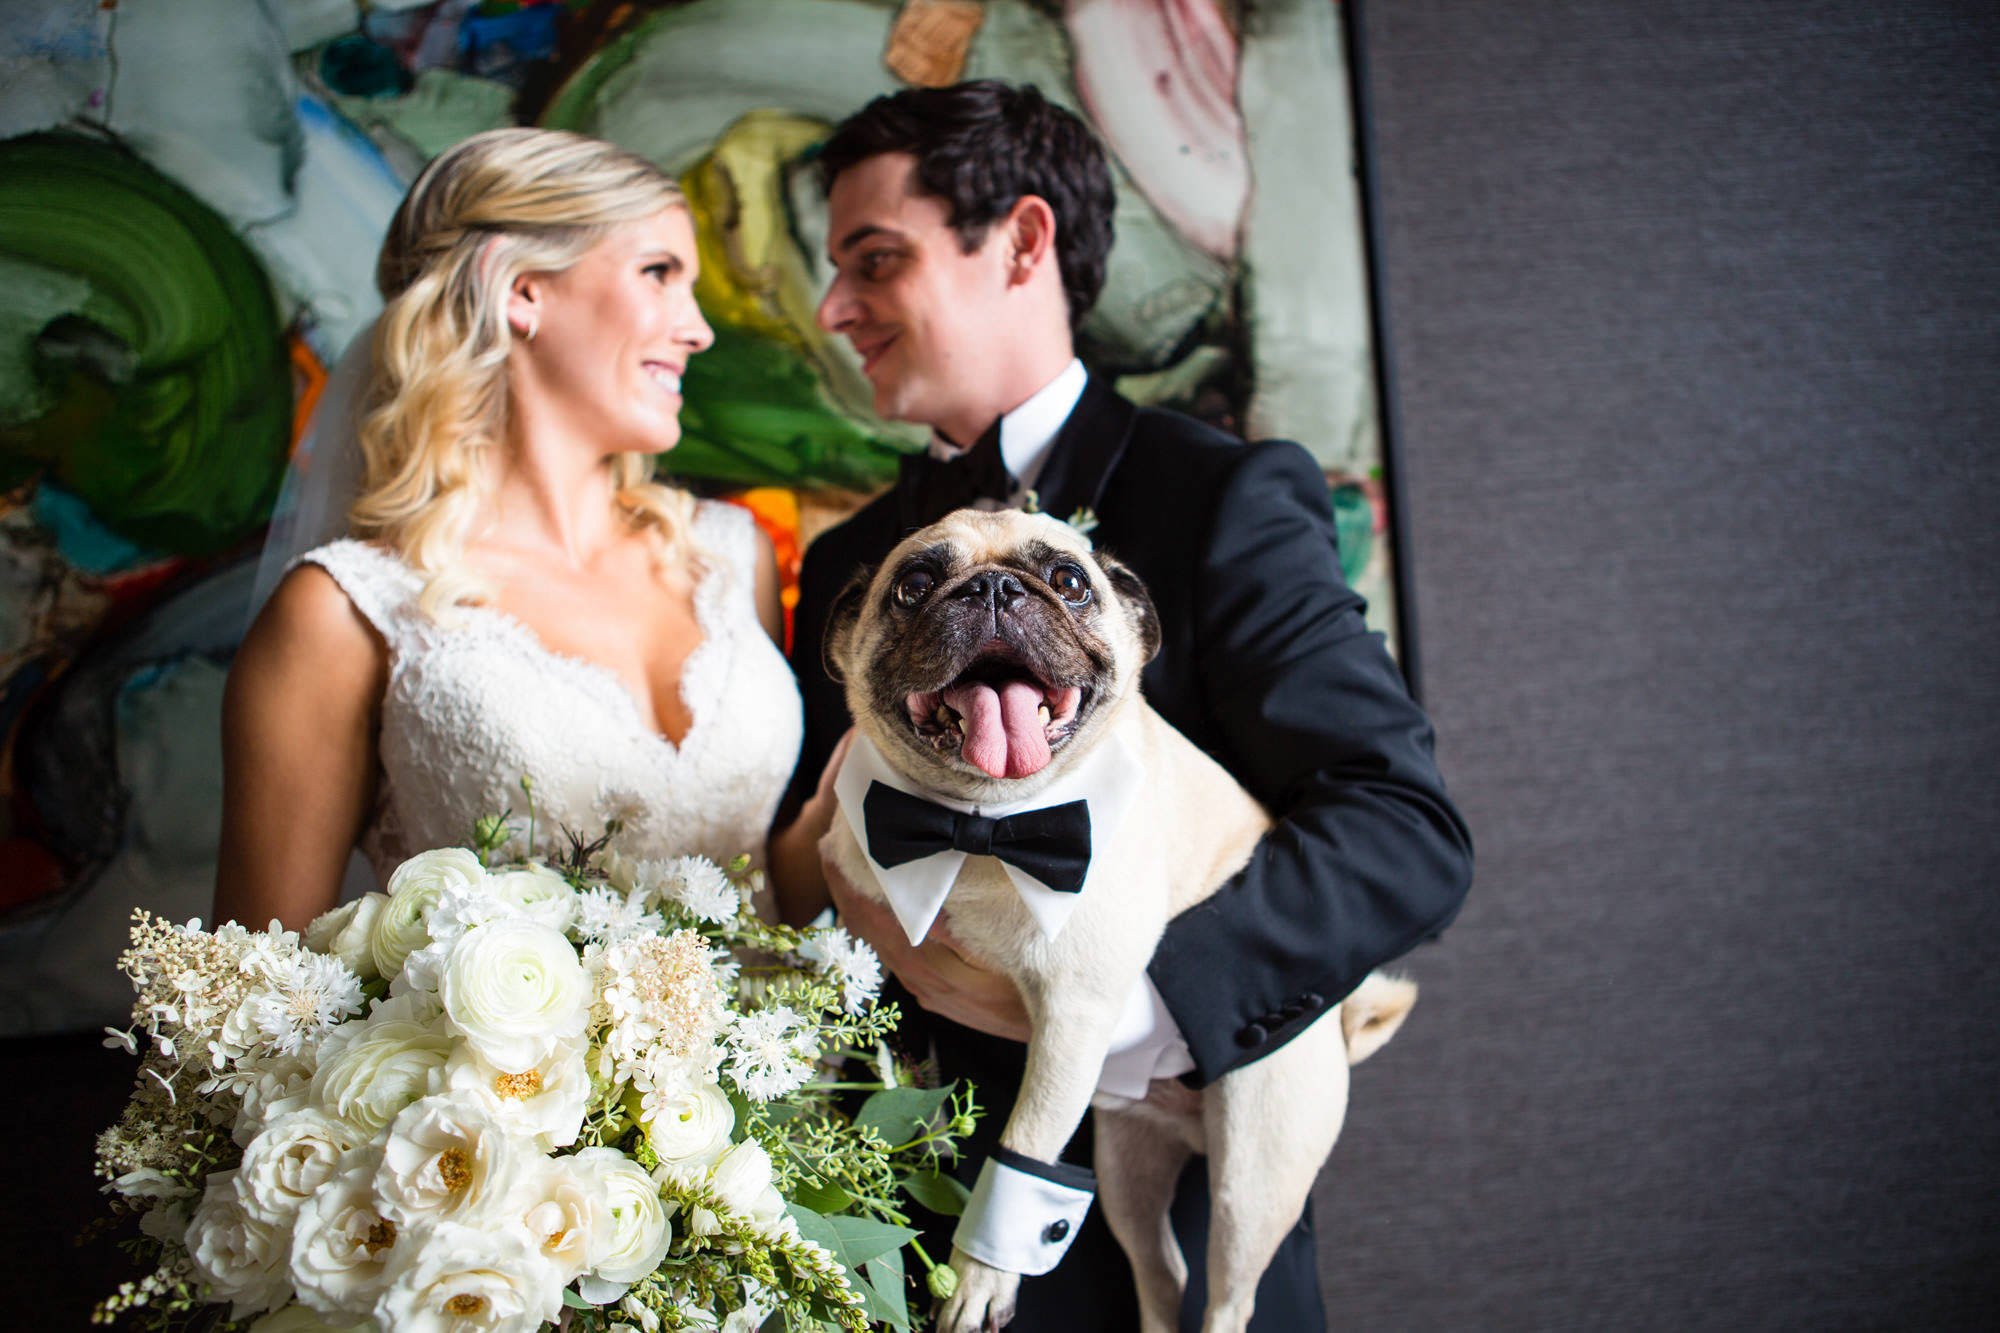 Couple with pug in bowtie  - La Vie Photography